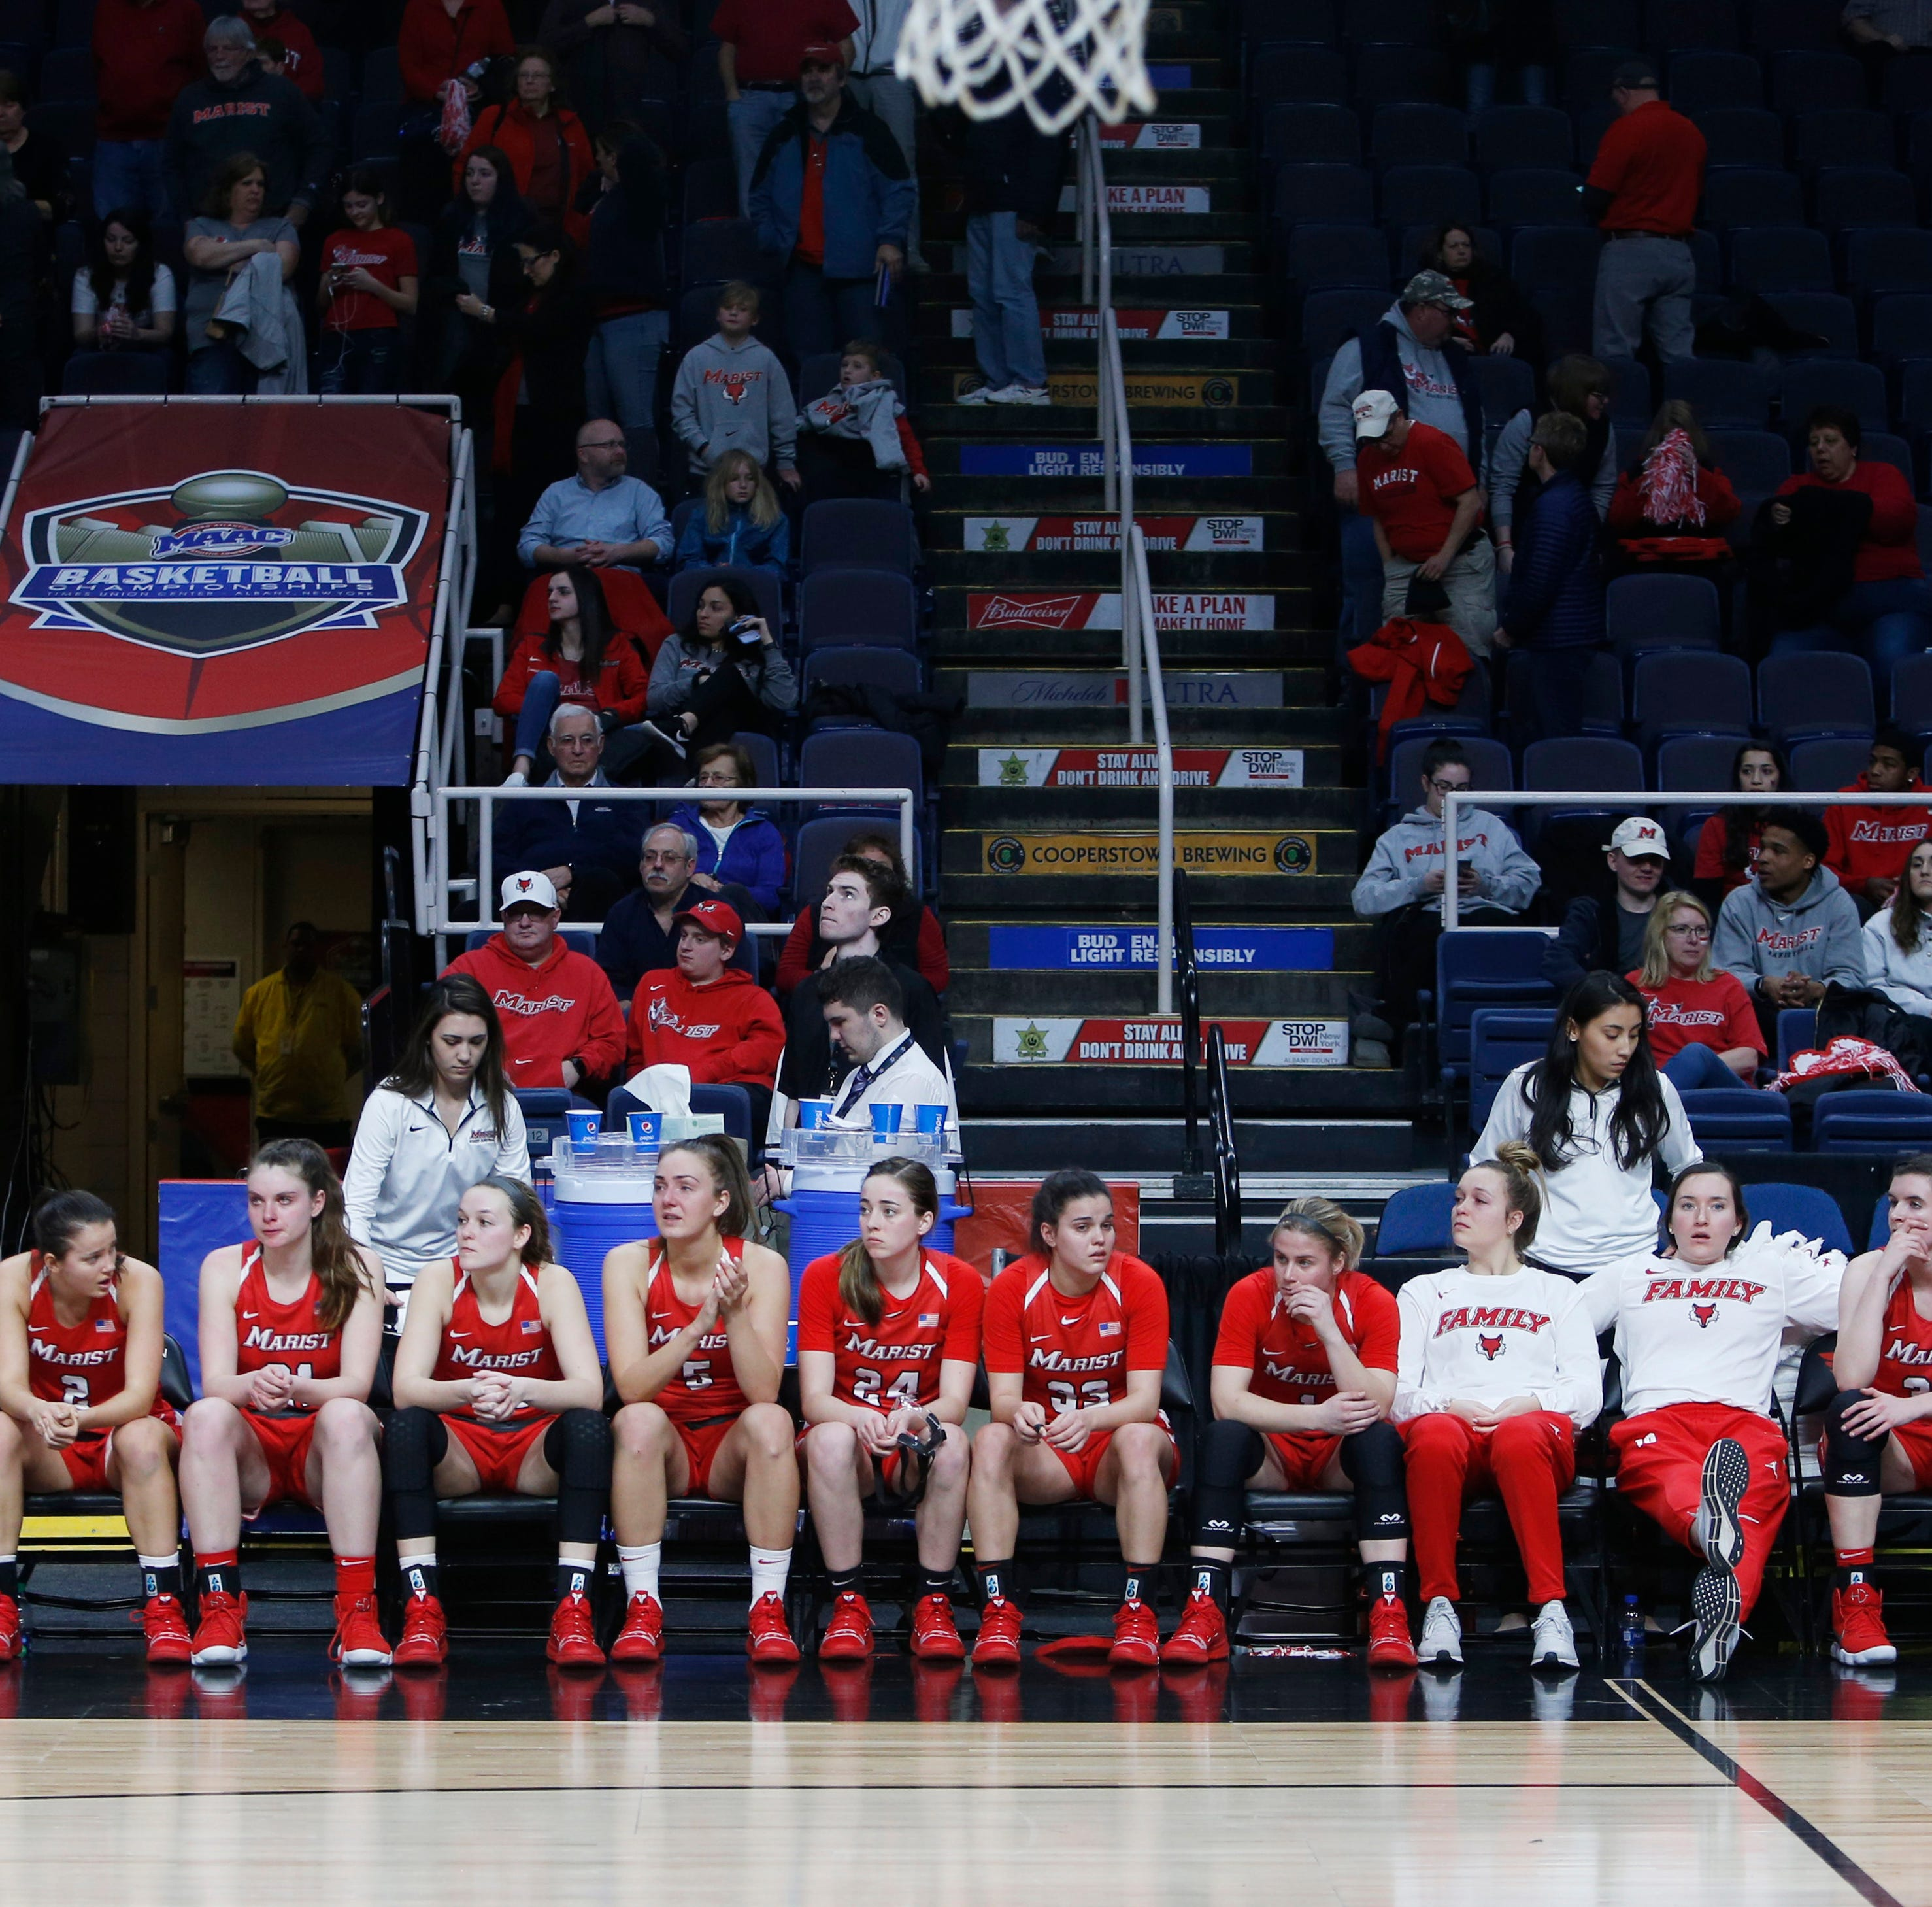 Marist falls in MAAC final for second-straight year, courtesy of Quinnipiac